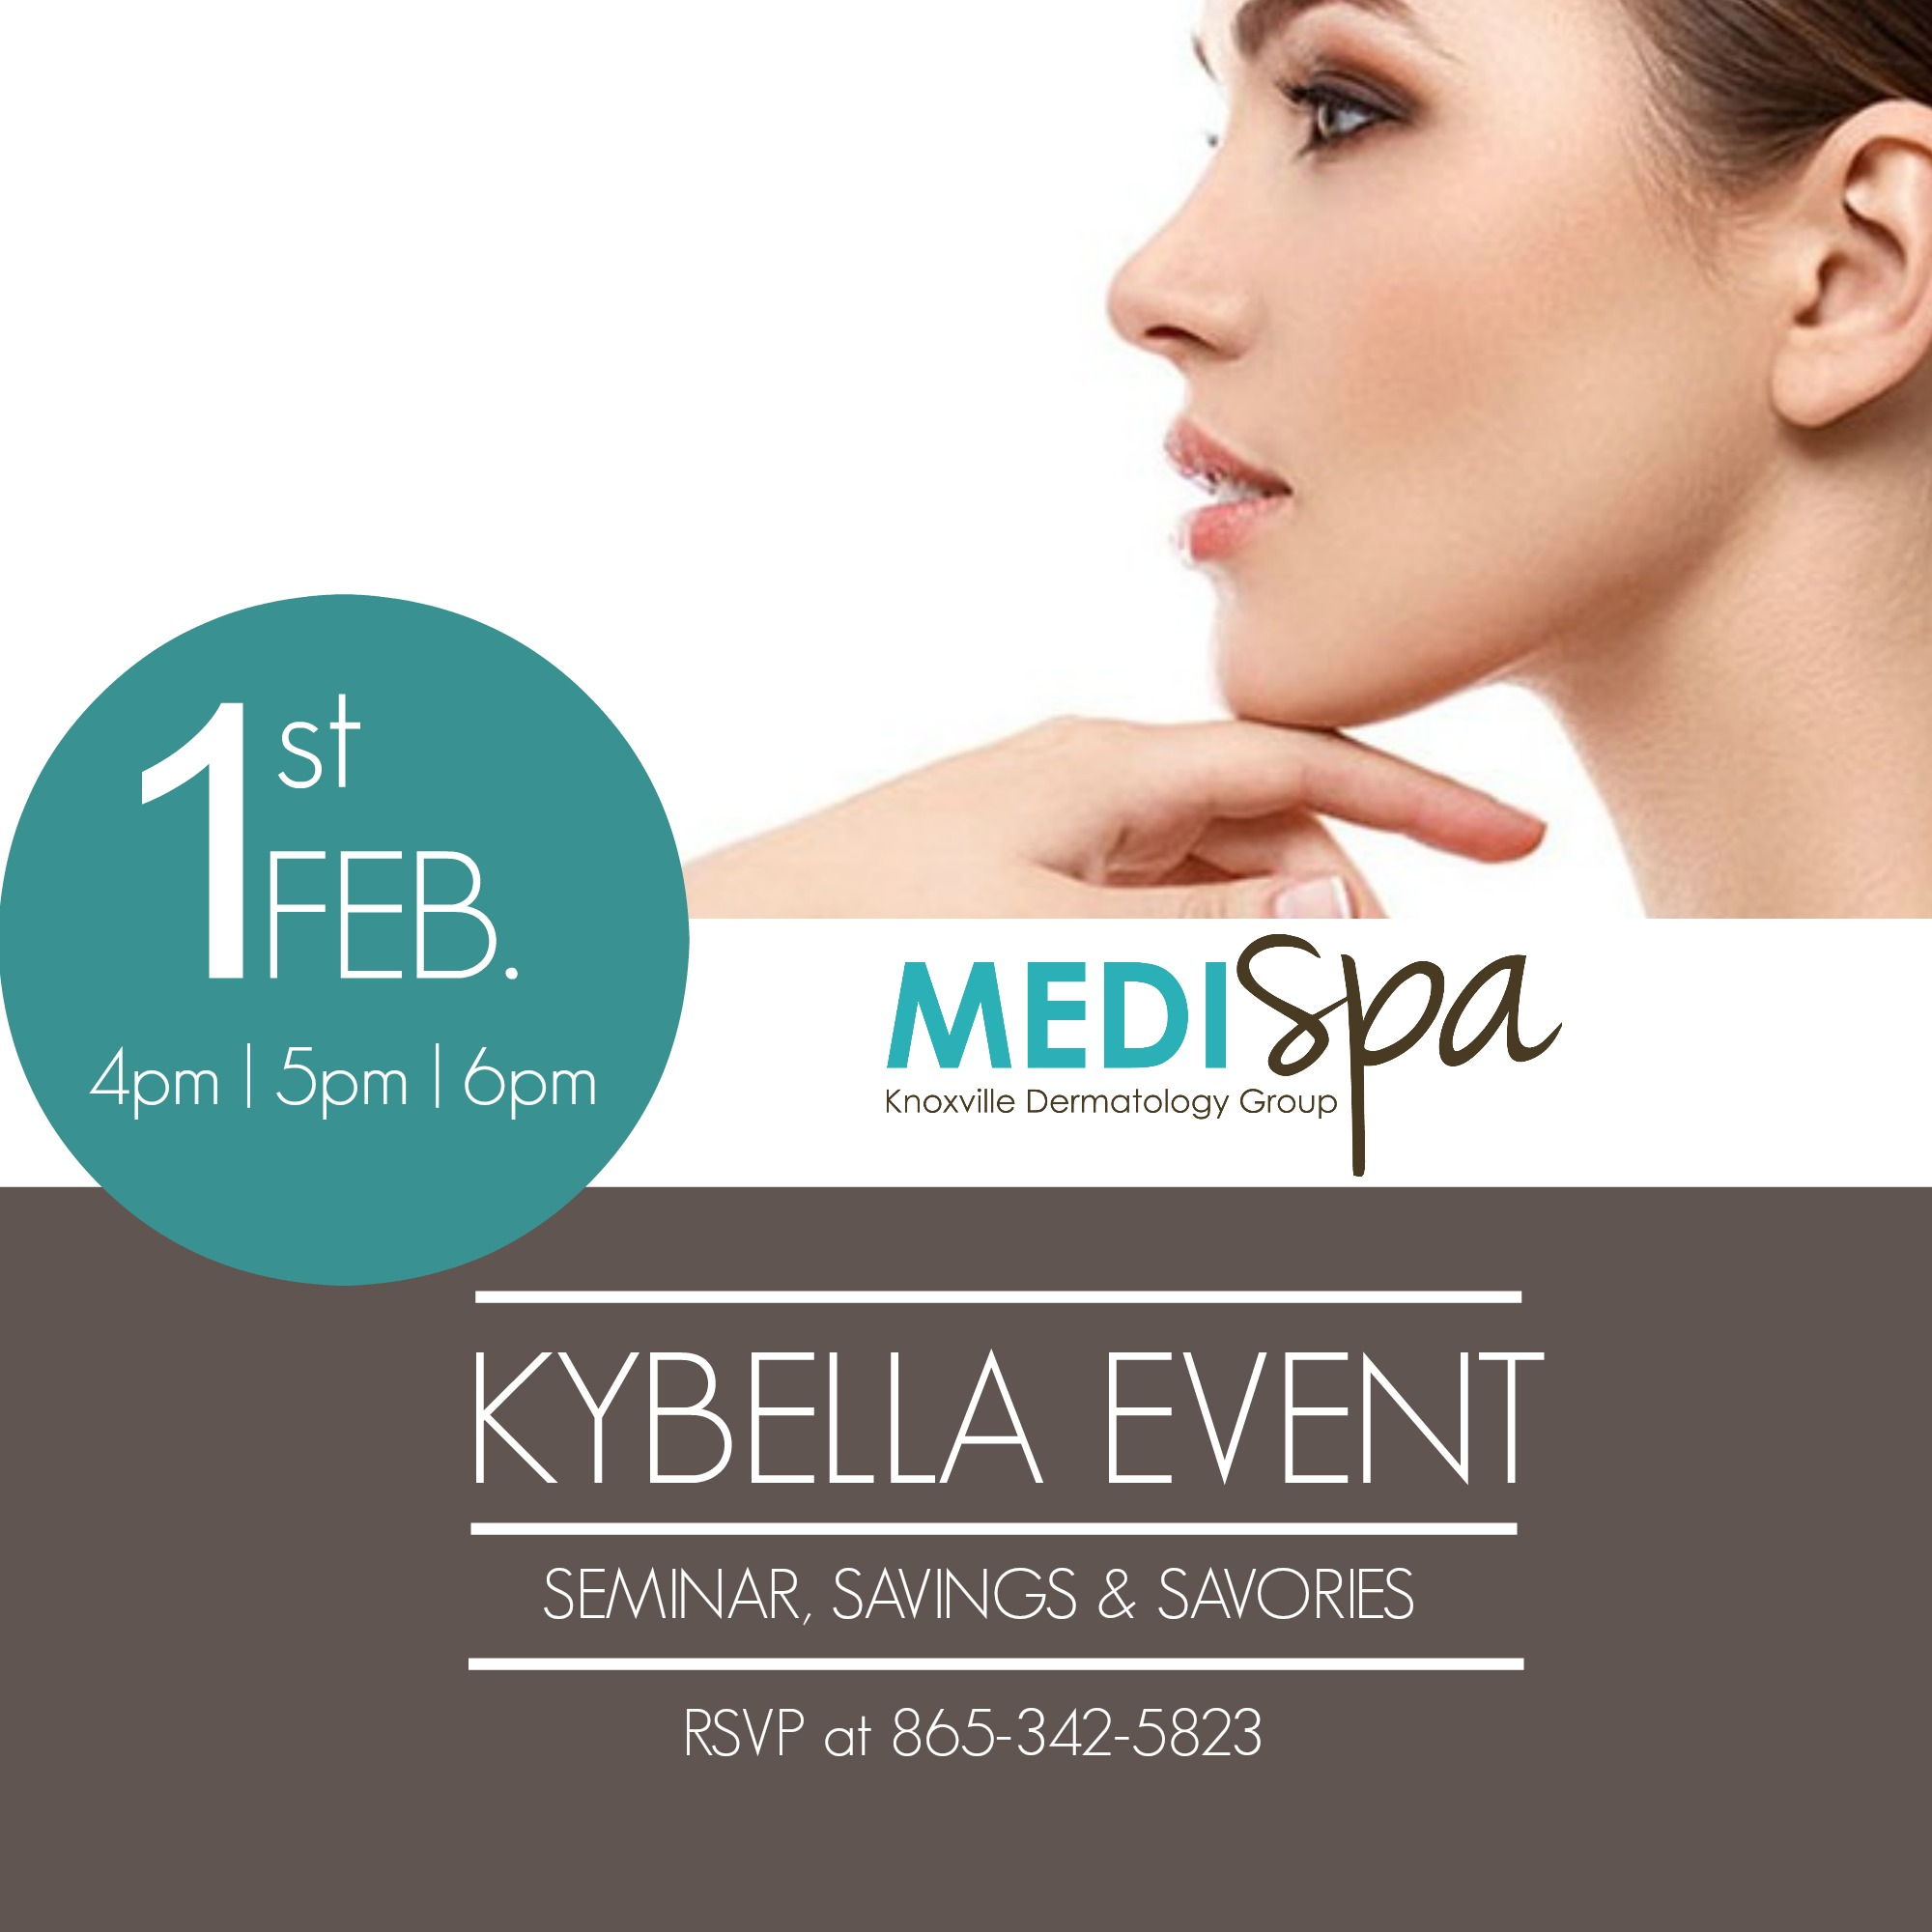 kybella event